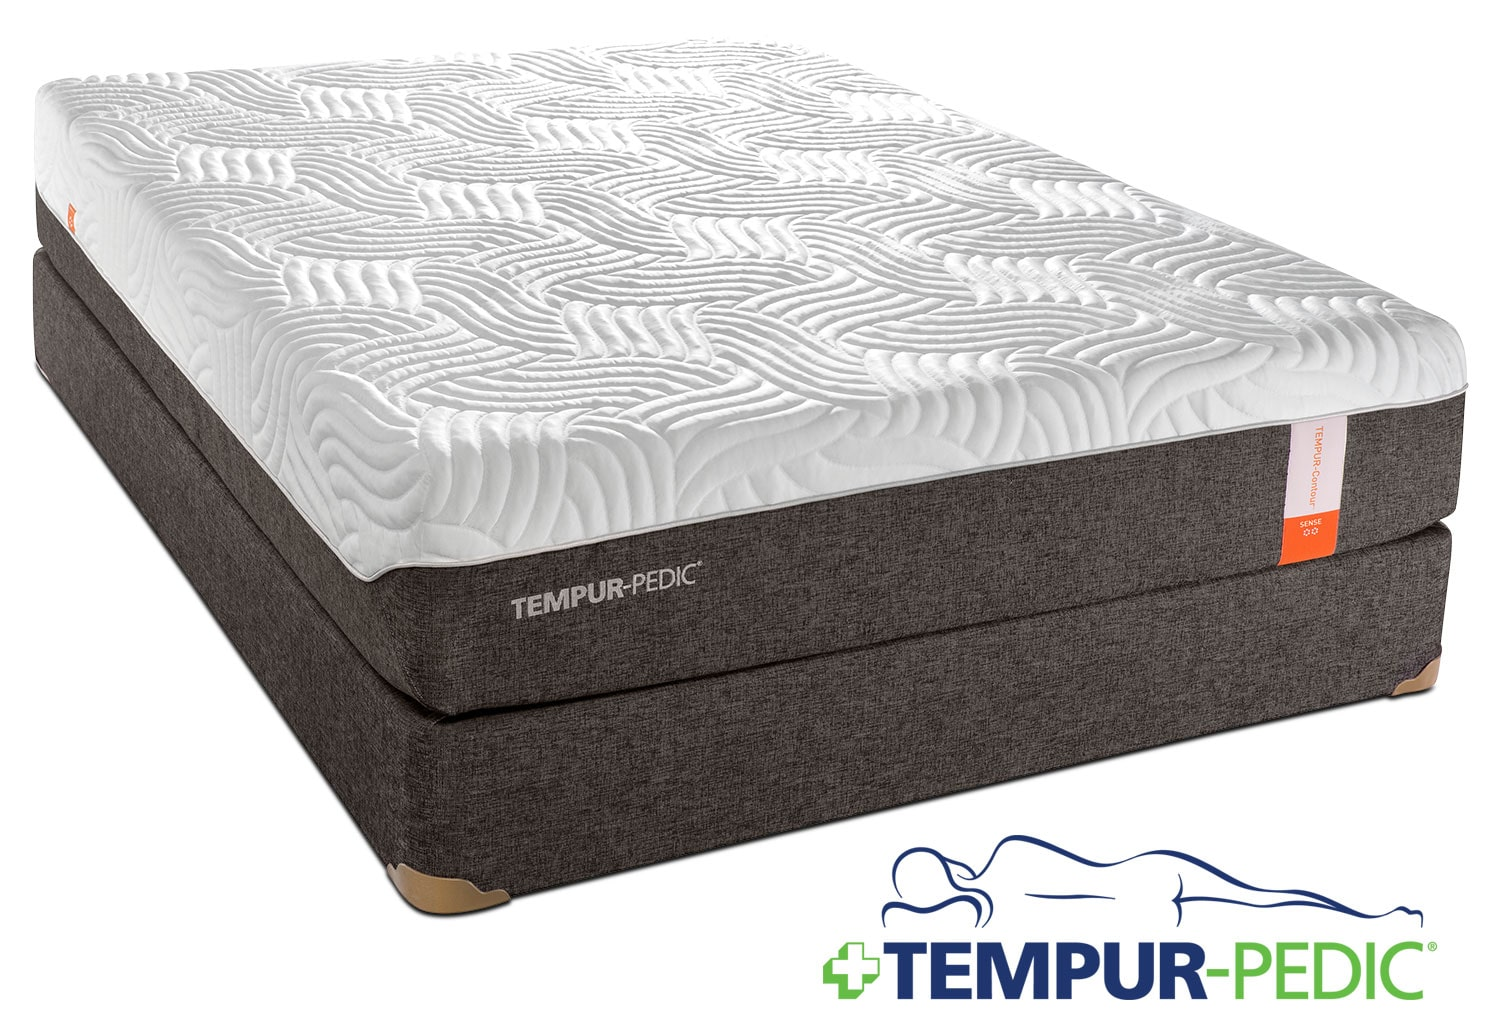 Mattresses and Bedding - Tempur-Pedic Sense Full Mattress/Boxspring Set